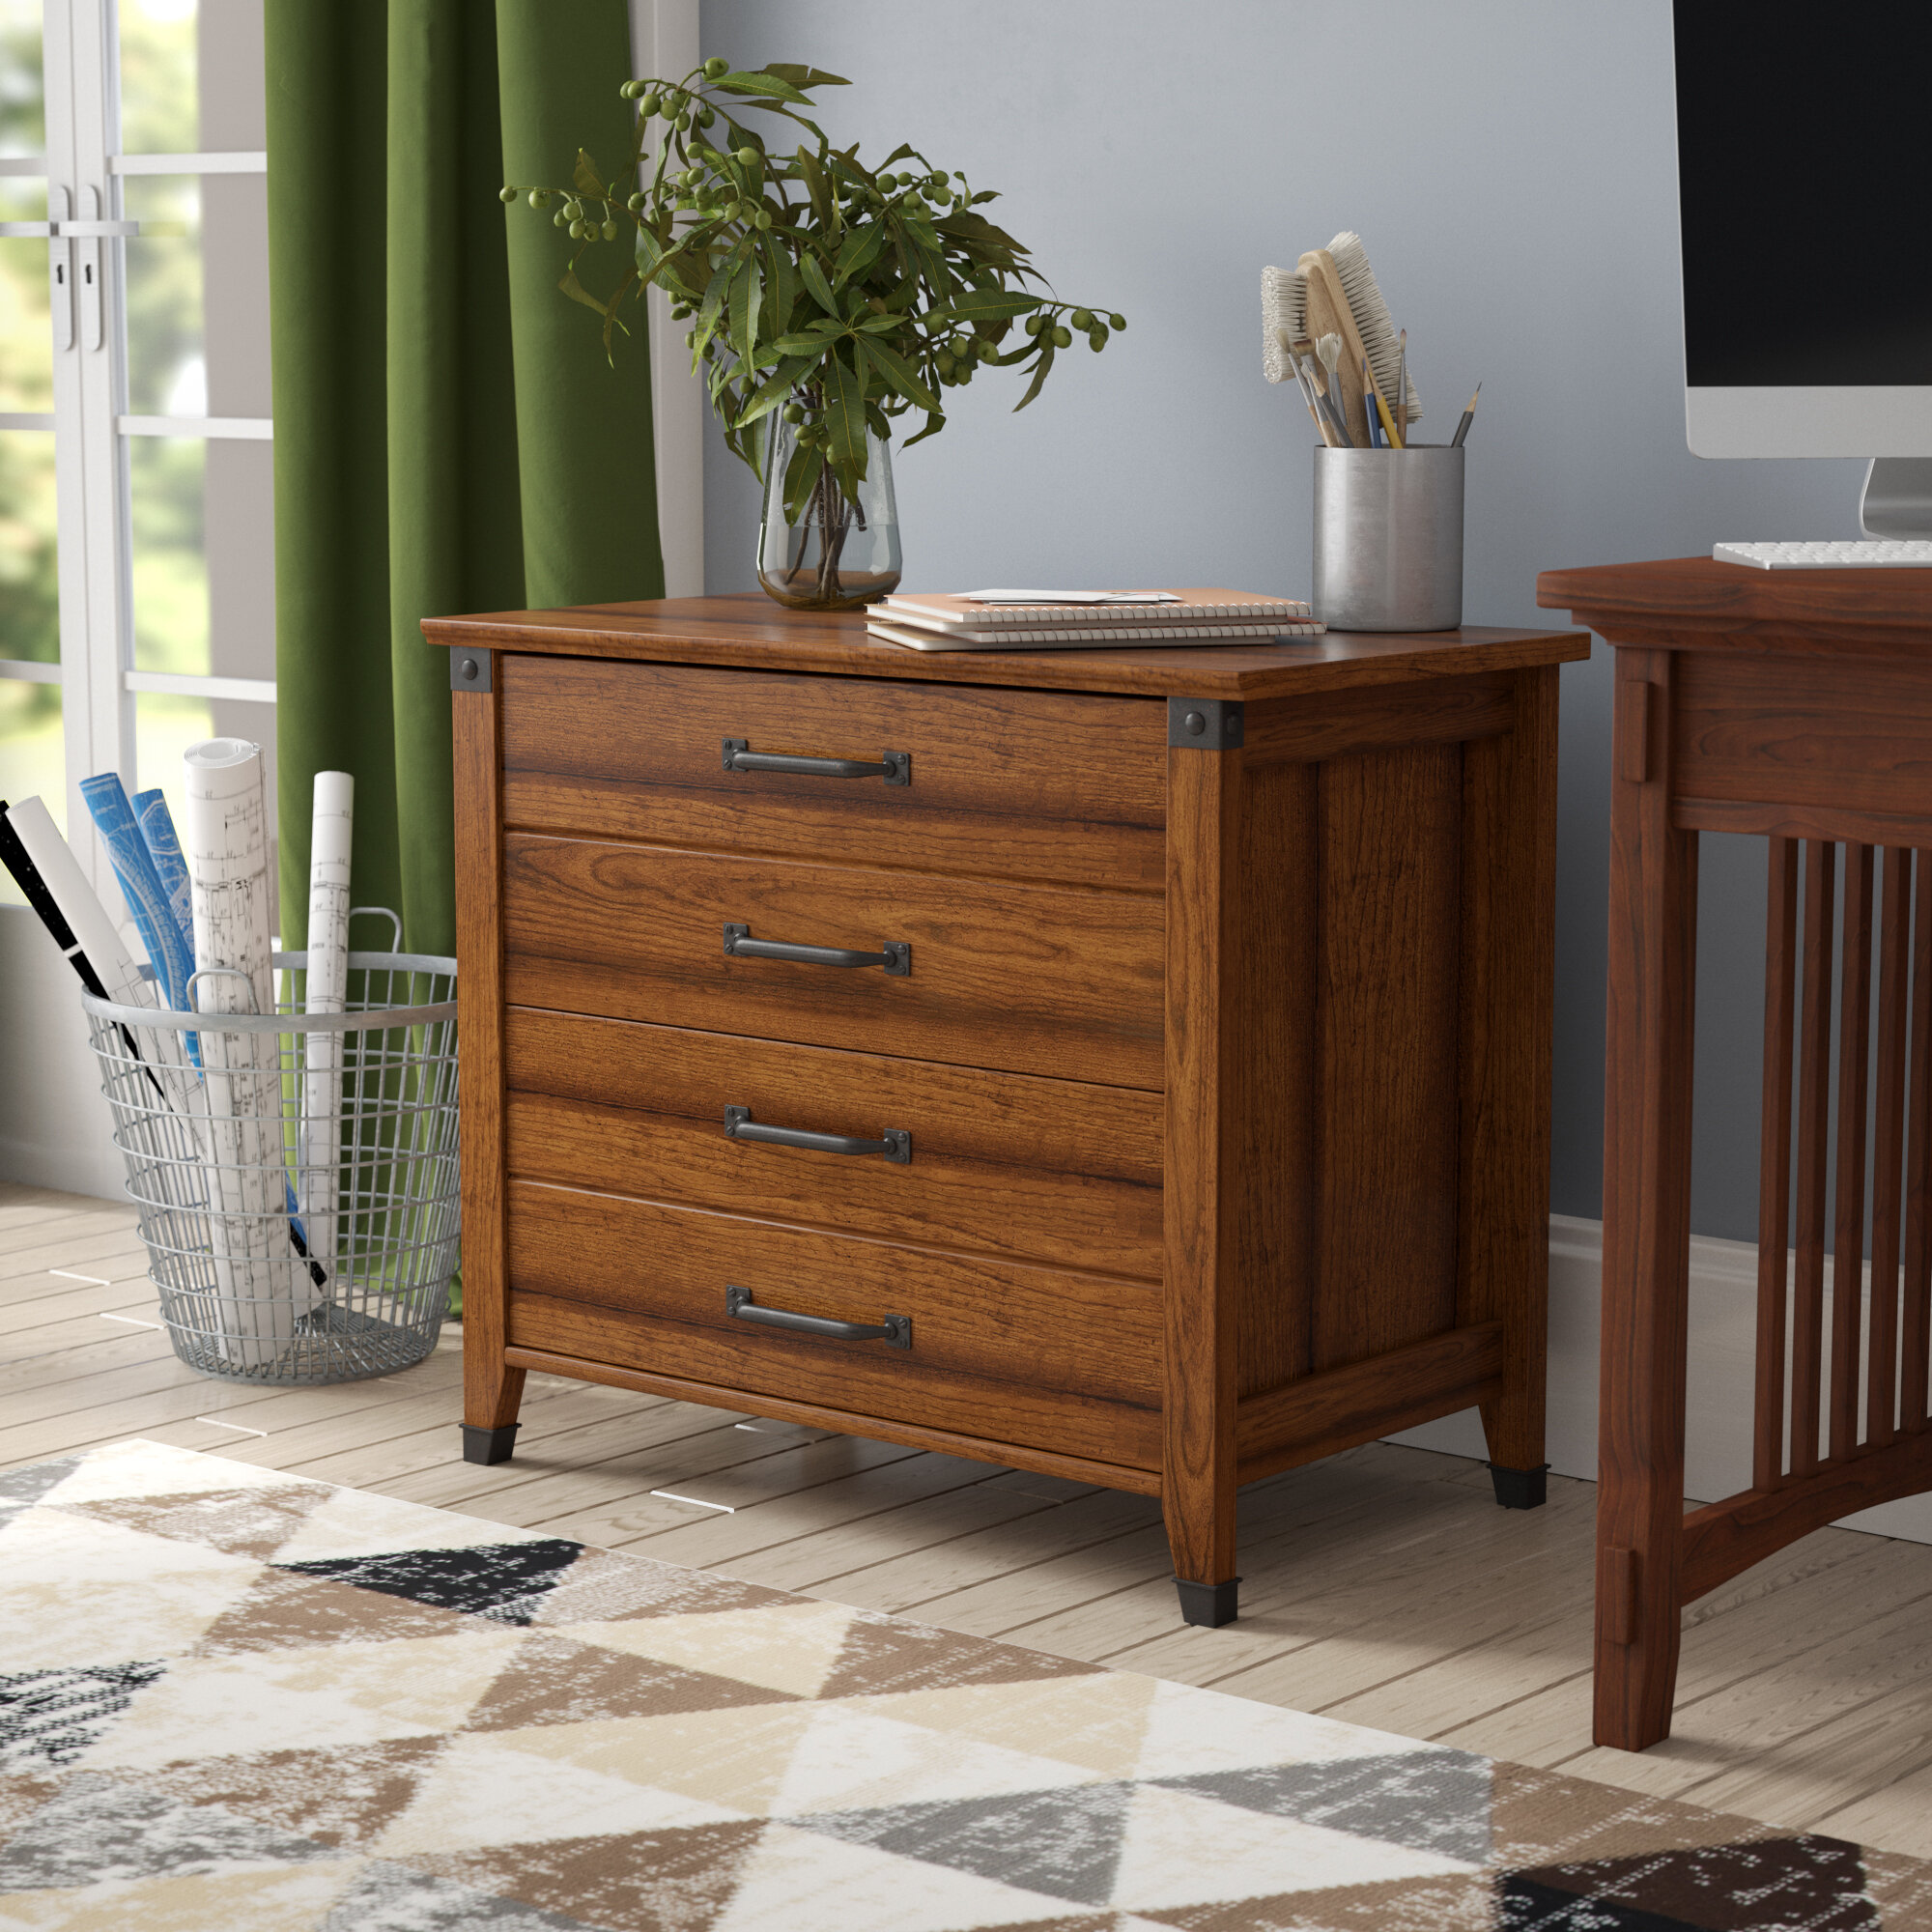 Phenomenal Chappel 2 Drawer Lateral Filing Cabinet Download Free Architecture Designs Itiscsunscenecom